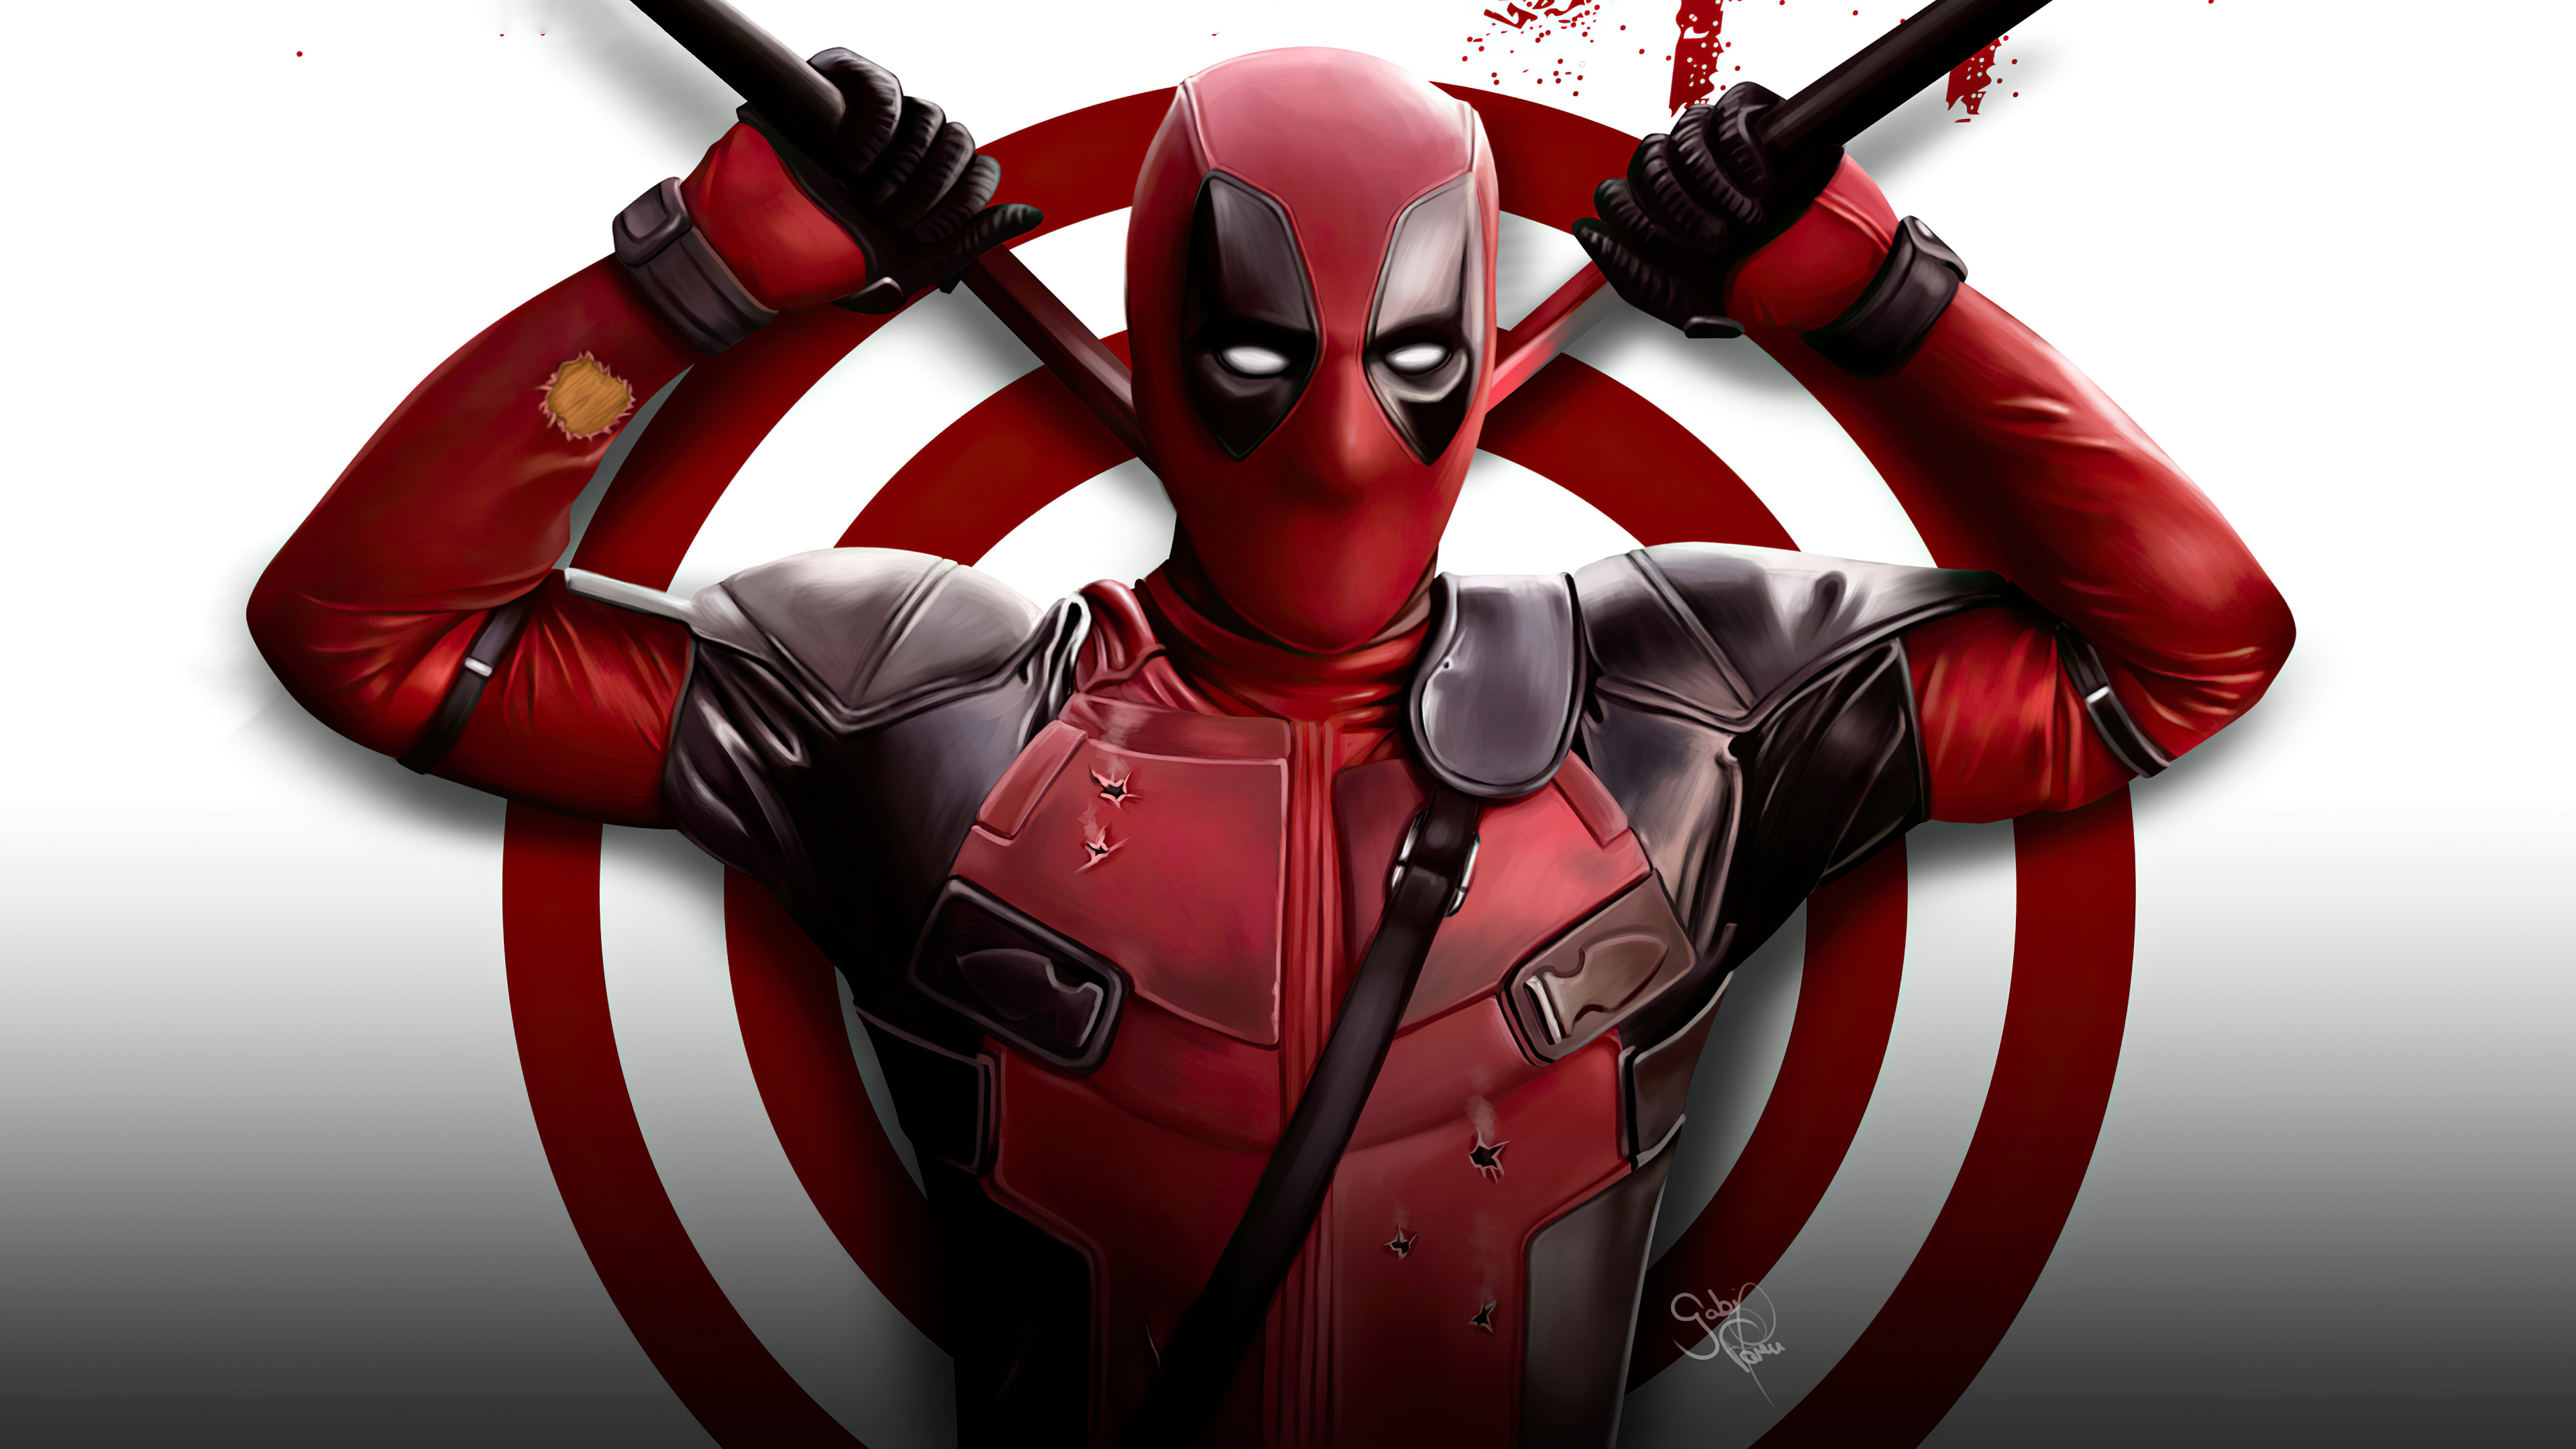 Wallpaper 4k Deadpool 2020 4k wallpaper deadpool Deadpool 2020